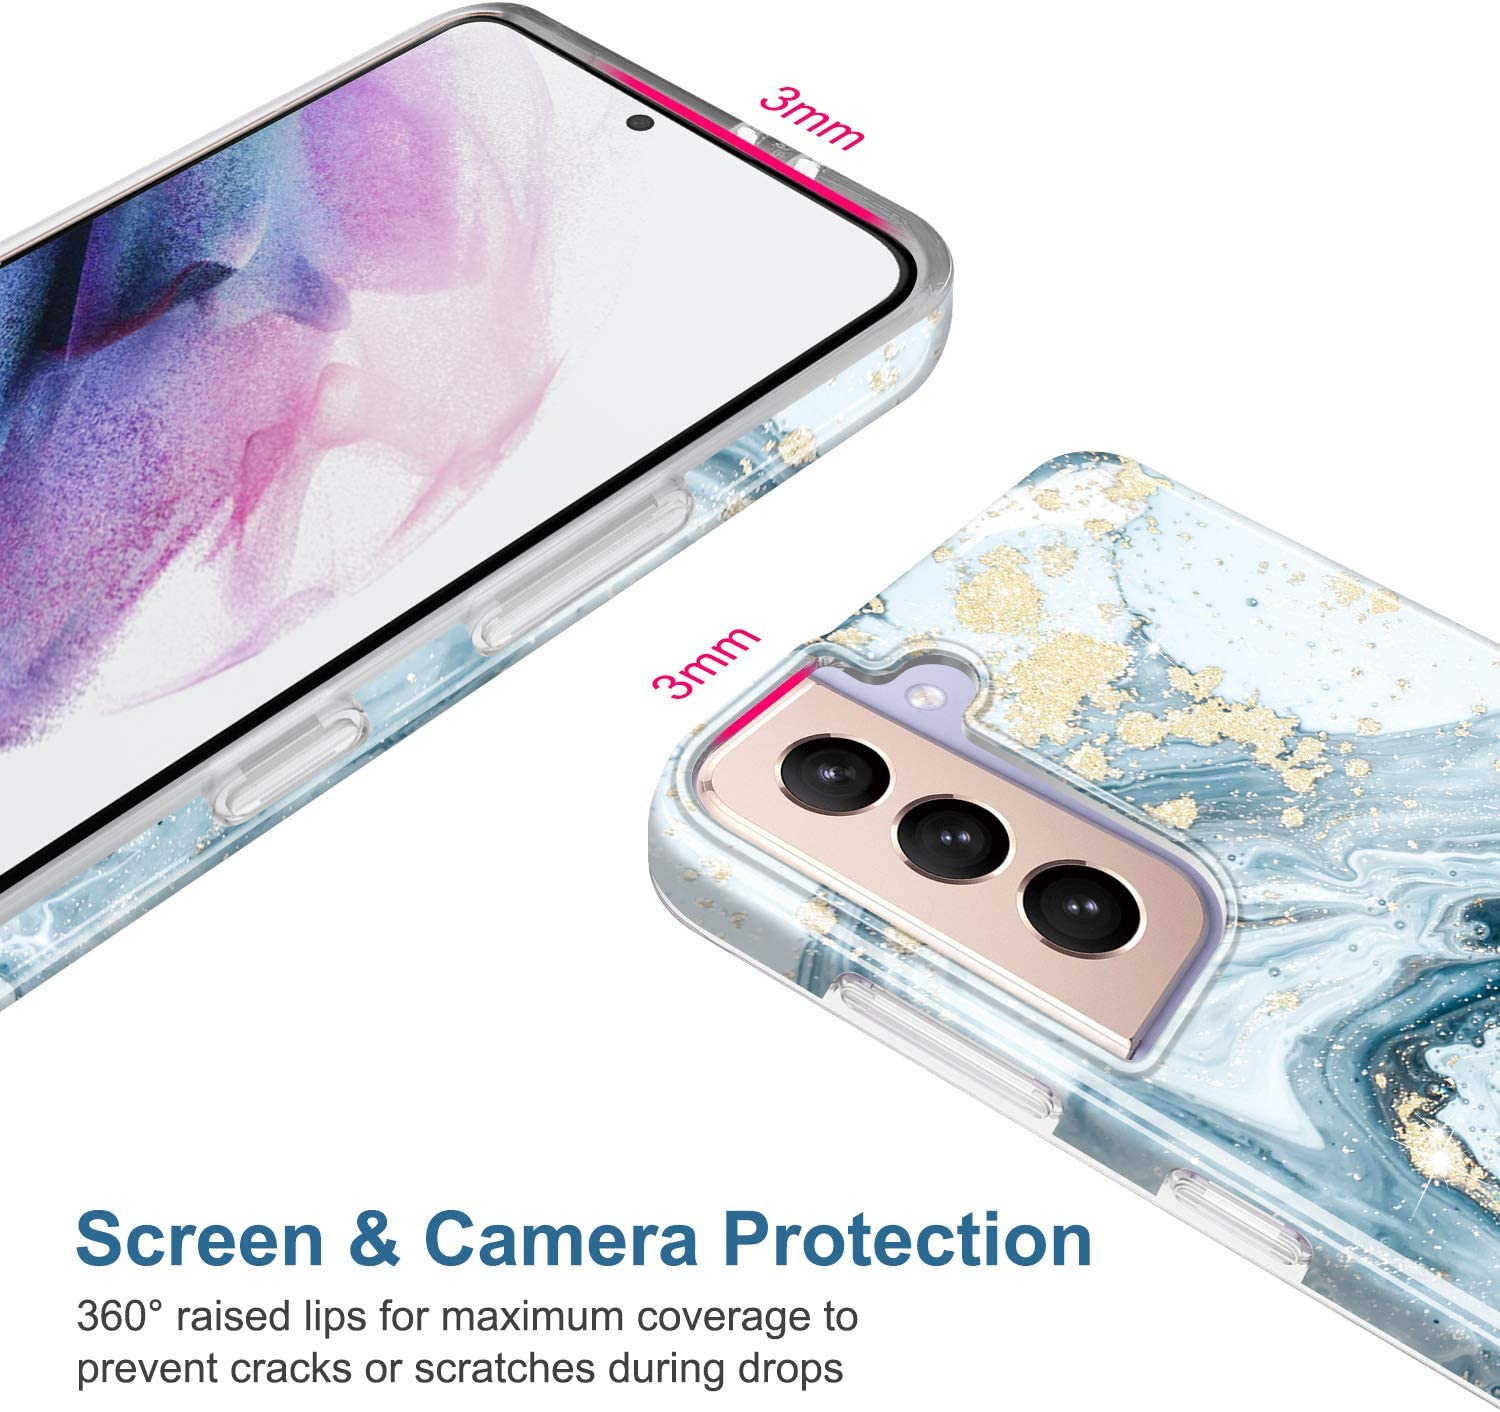 JIAXIUFEN Galaxy S21 Case Gold Sparkle Glitter Marble Slim Shockproof TPU Soft Rubber Silicone Cover Phone Case for Samsung Galaxy S21 5G 6.2 inch 2021 Blue